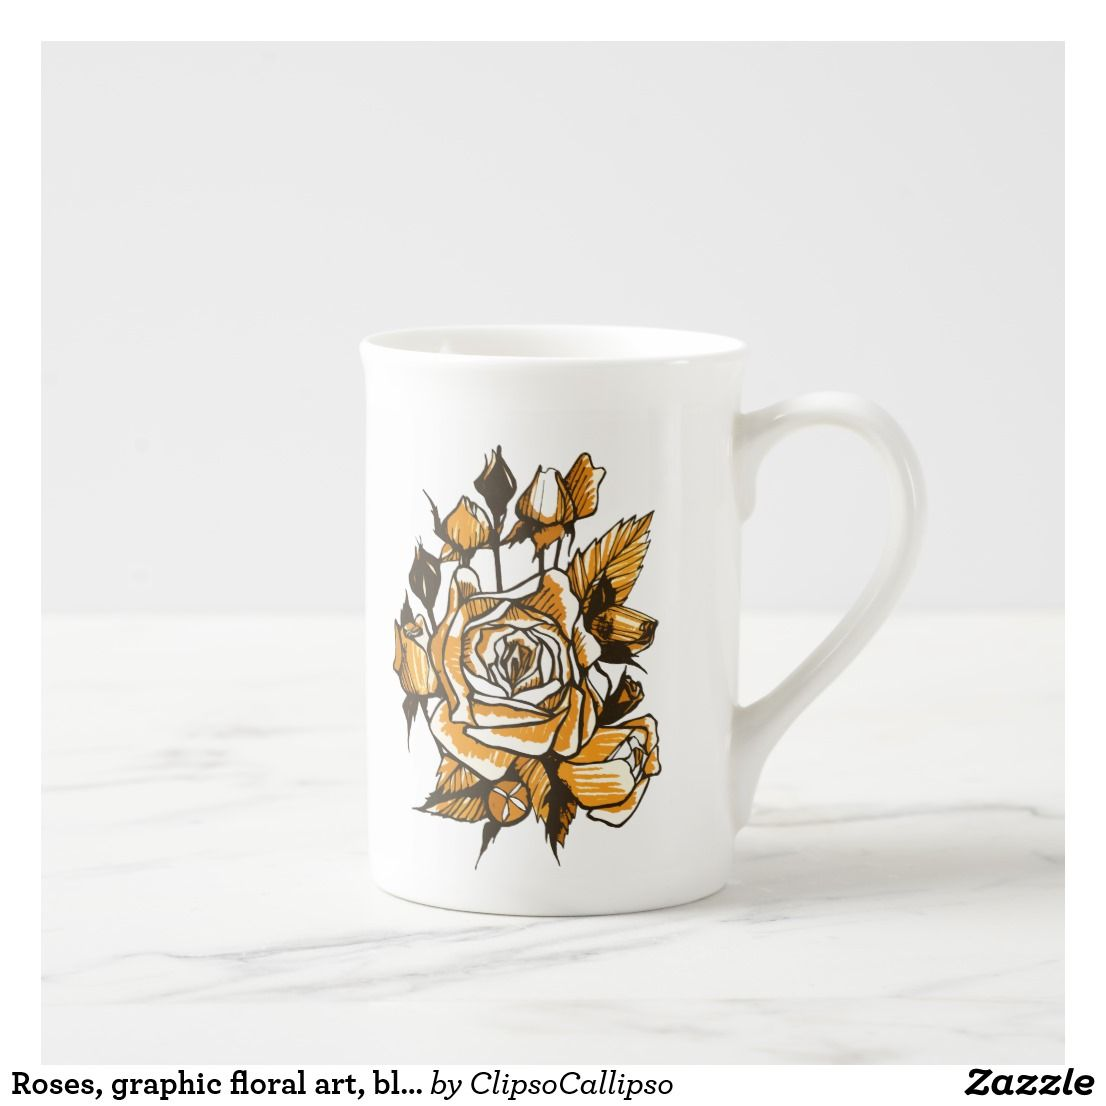 Roses, graphic floral art, blooming rose flowers tea cup